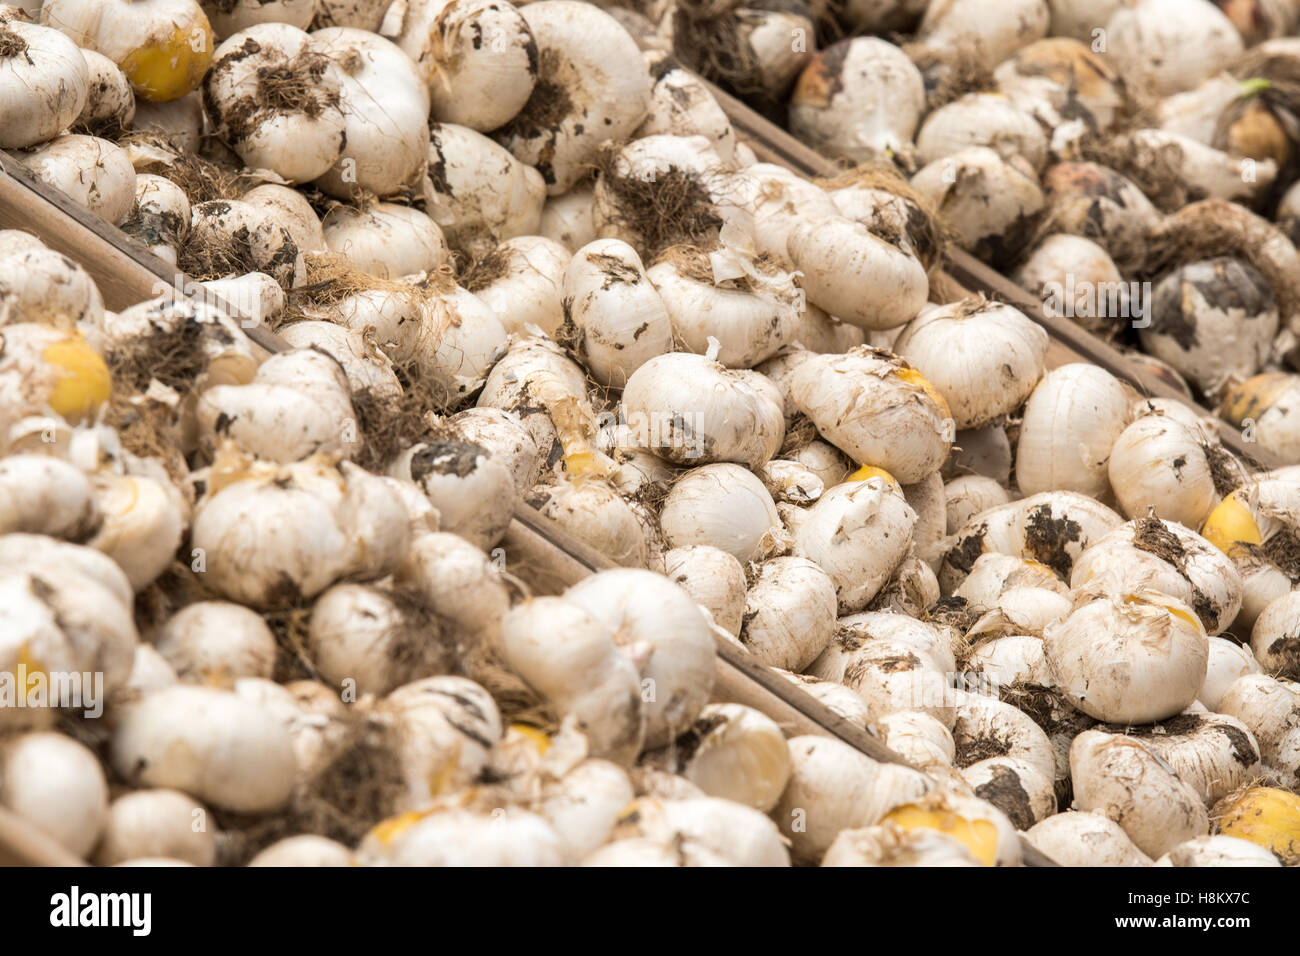 Amsterdam, Netherlands close up of different flower bulbs for sale in an outdoor market. Stock Photo